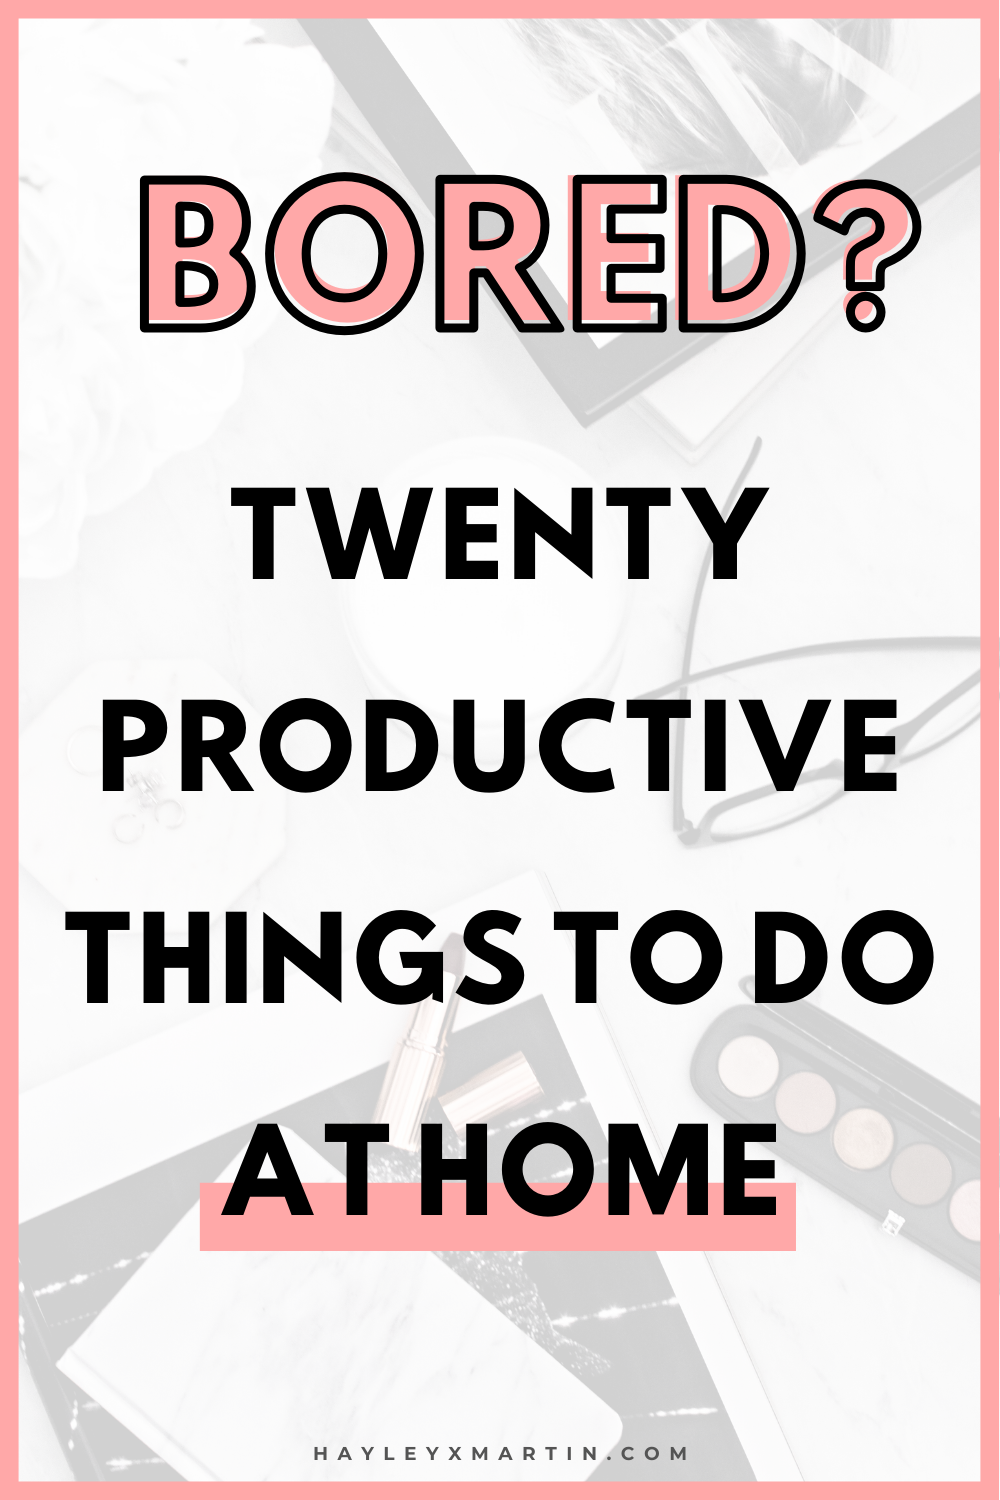 BORED? TWENTY PRODUCTIVE THINGS TO DO AT HOME | HAYLEYXMARTIN